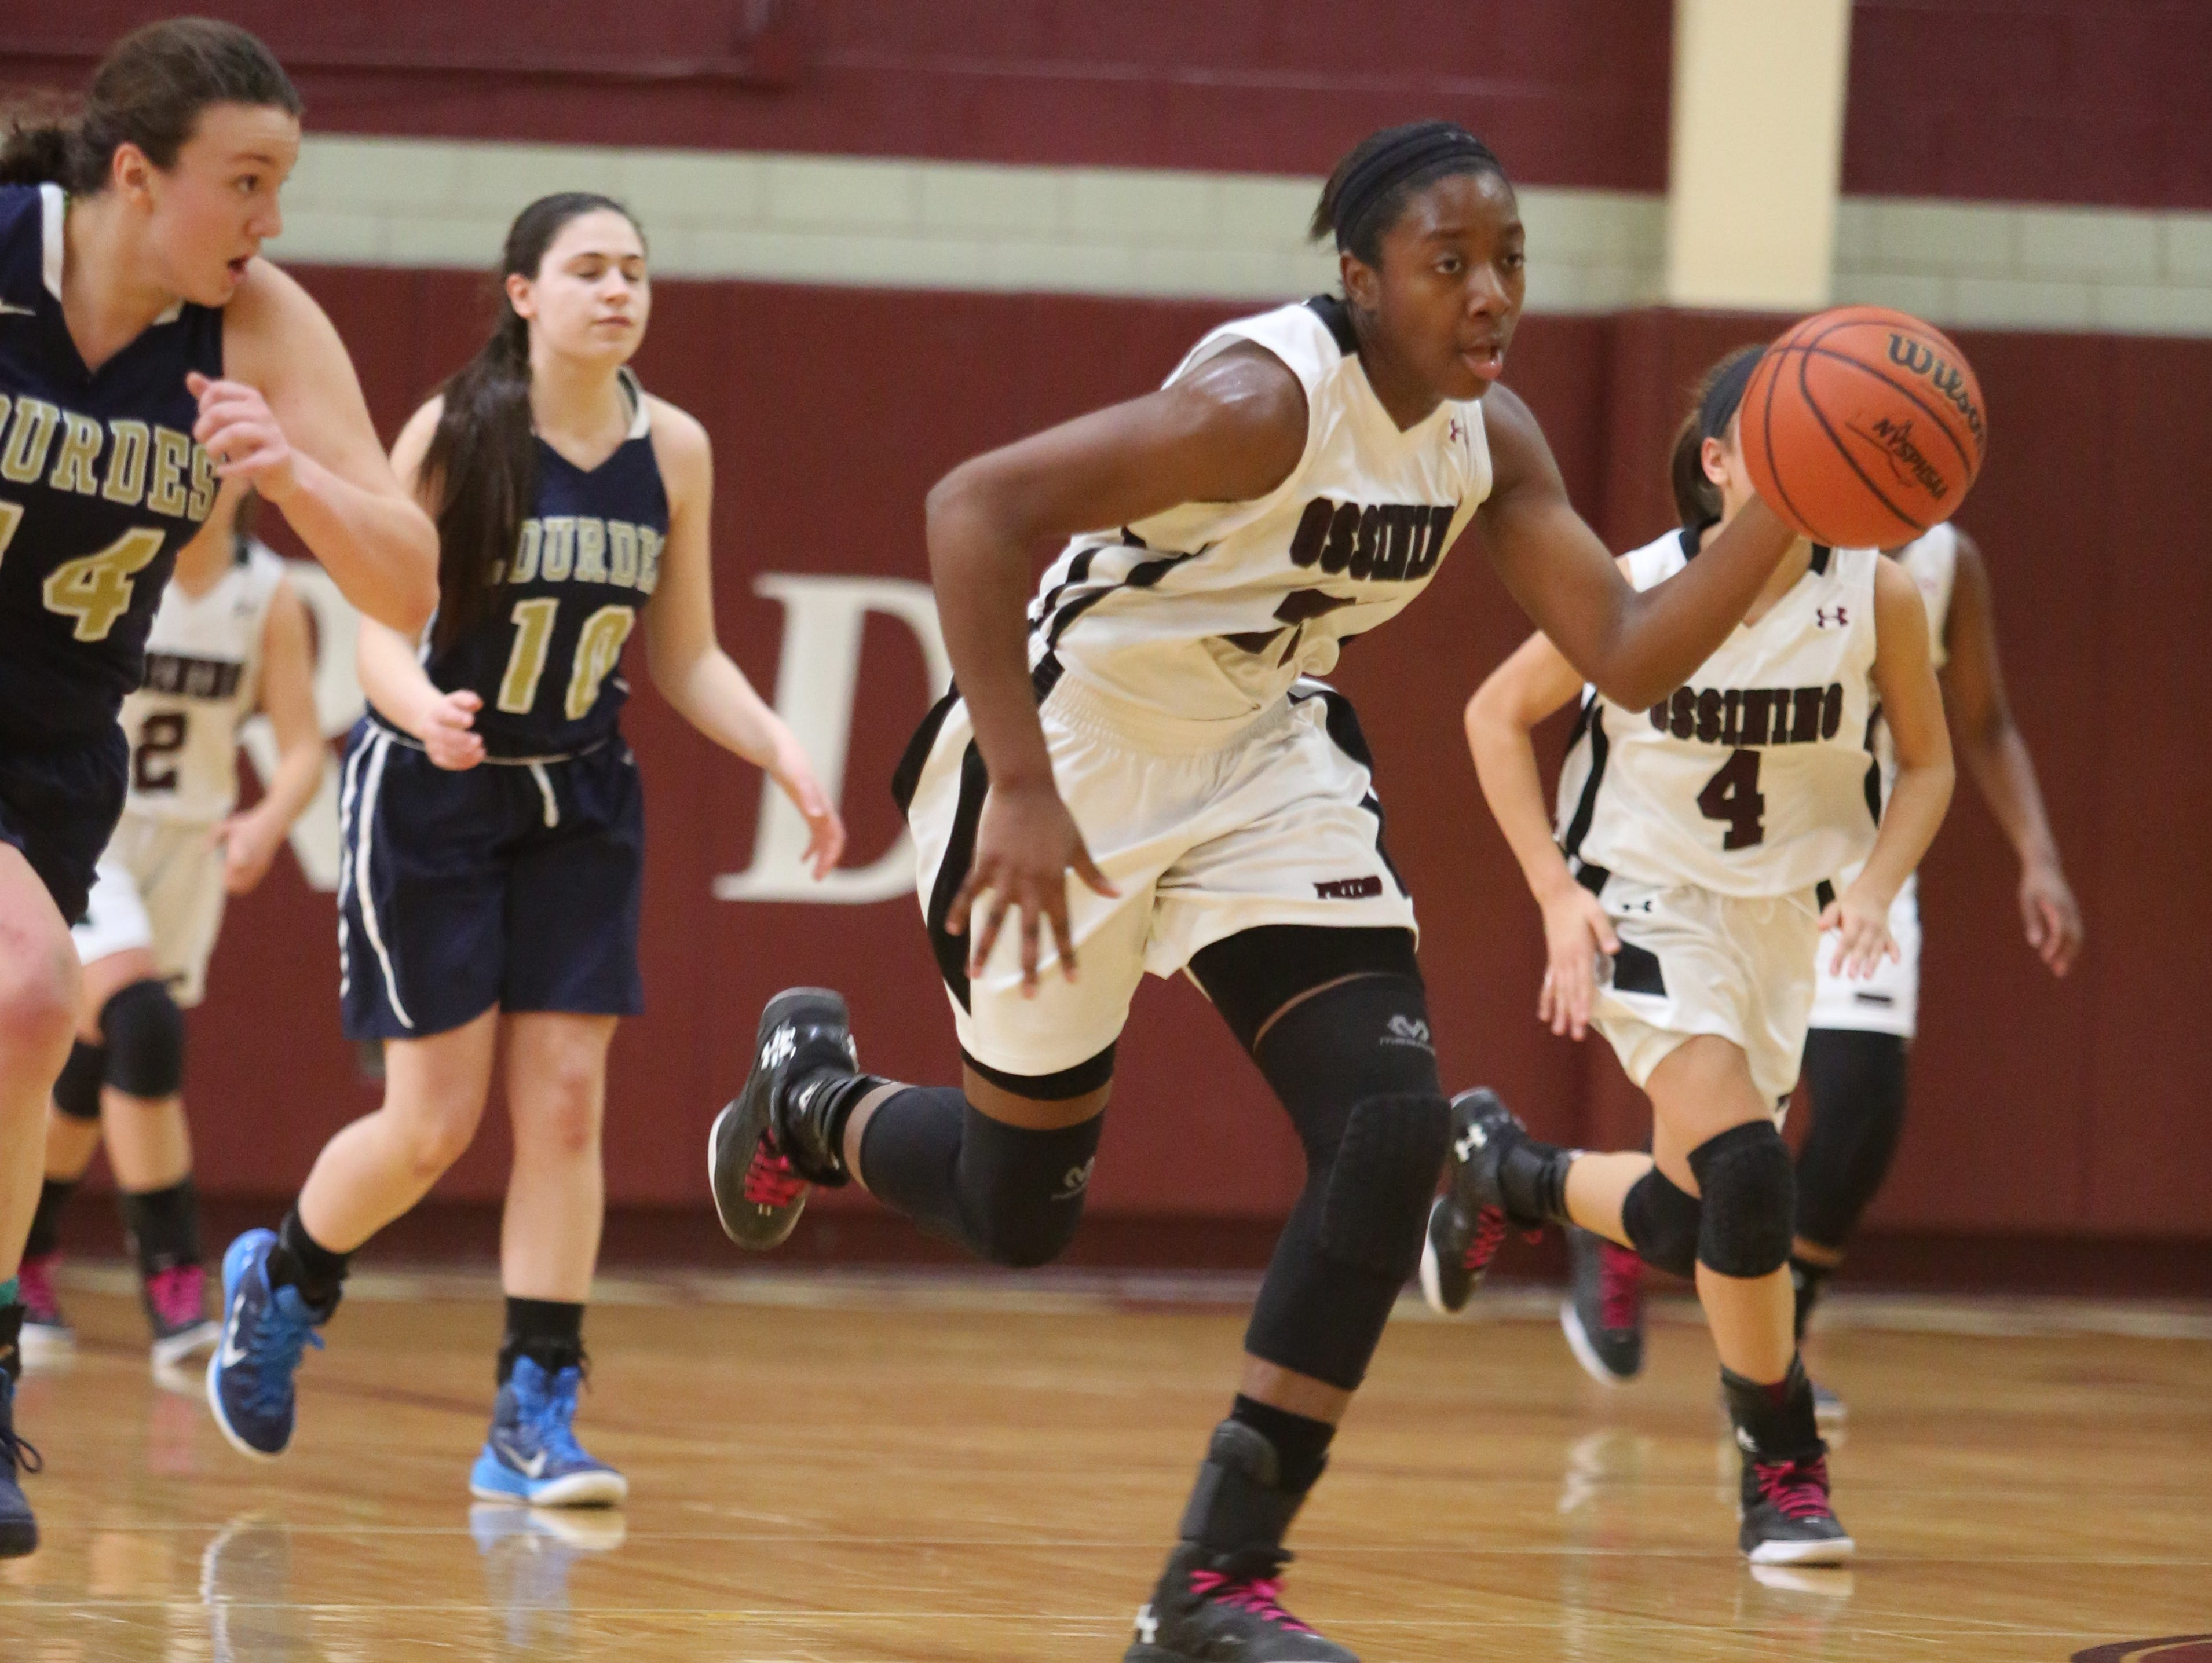 Ossining's Shadeen Samuels moves the ball downcourt as they play Our Lady of Lourdes in Ossining, Feb. 20, 2016. Ossining beat Lourdes, 90-27.